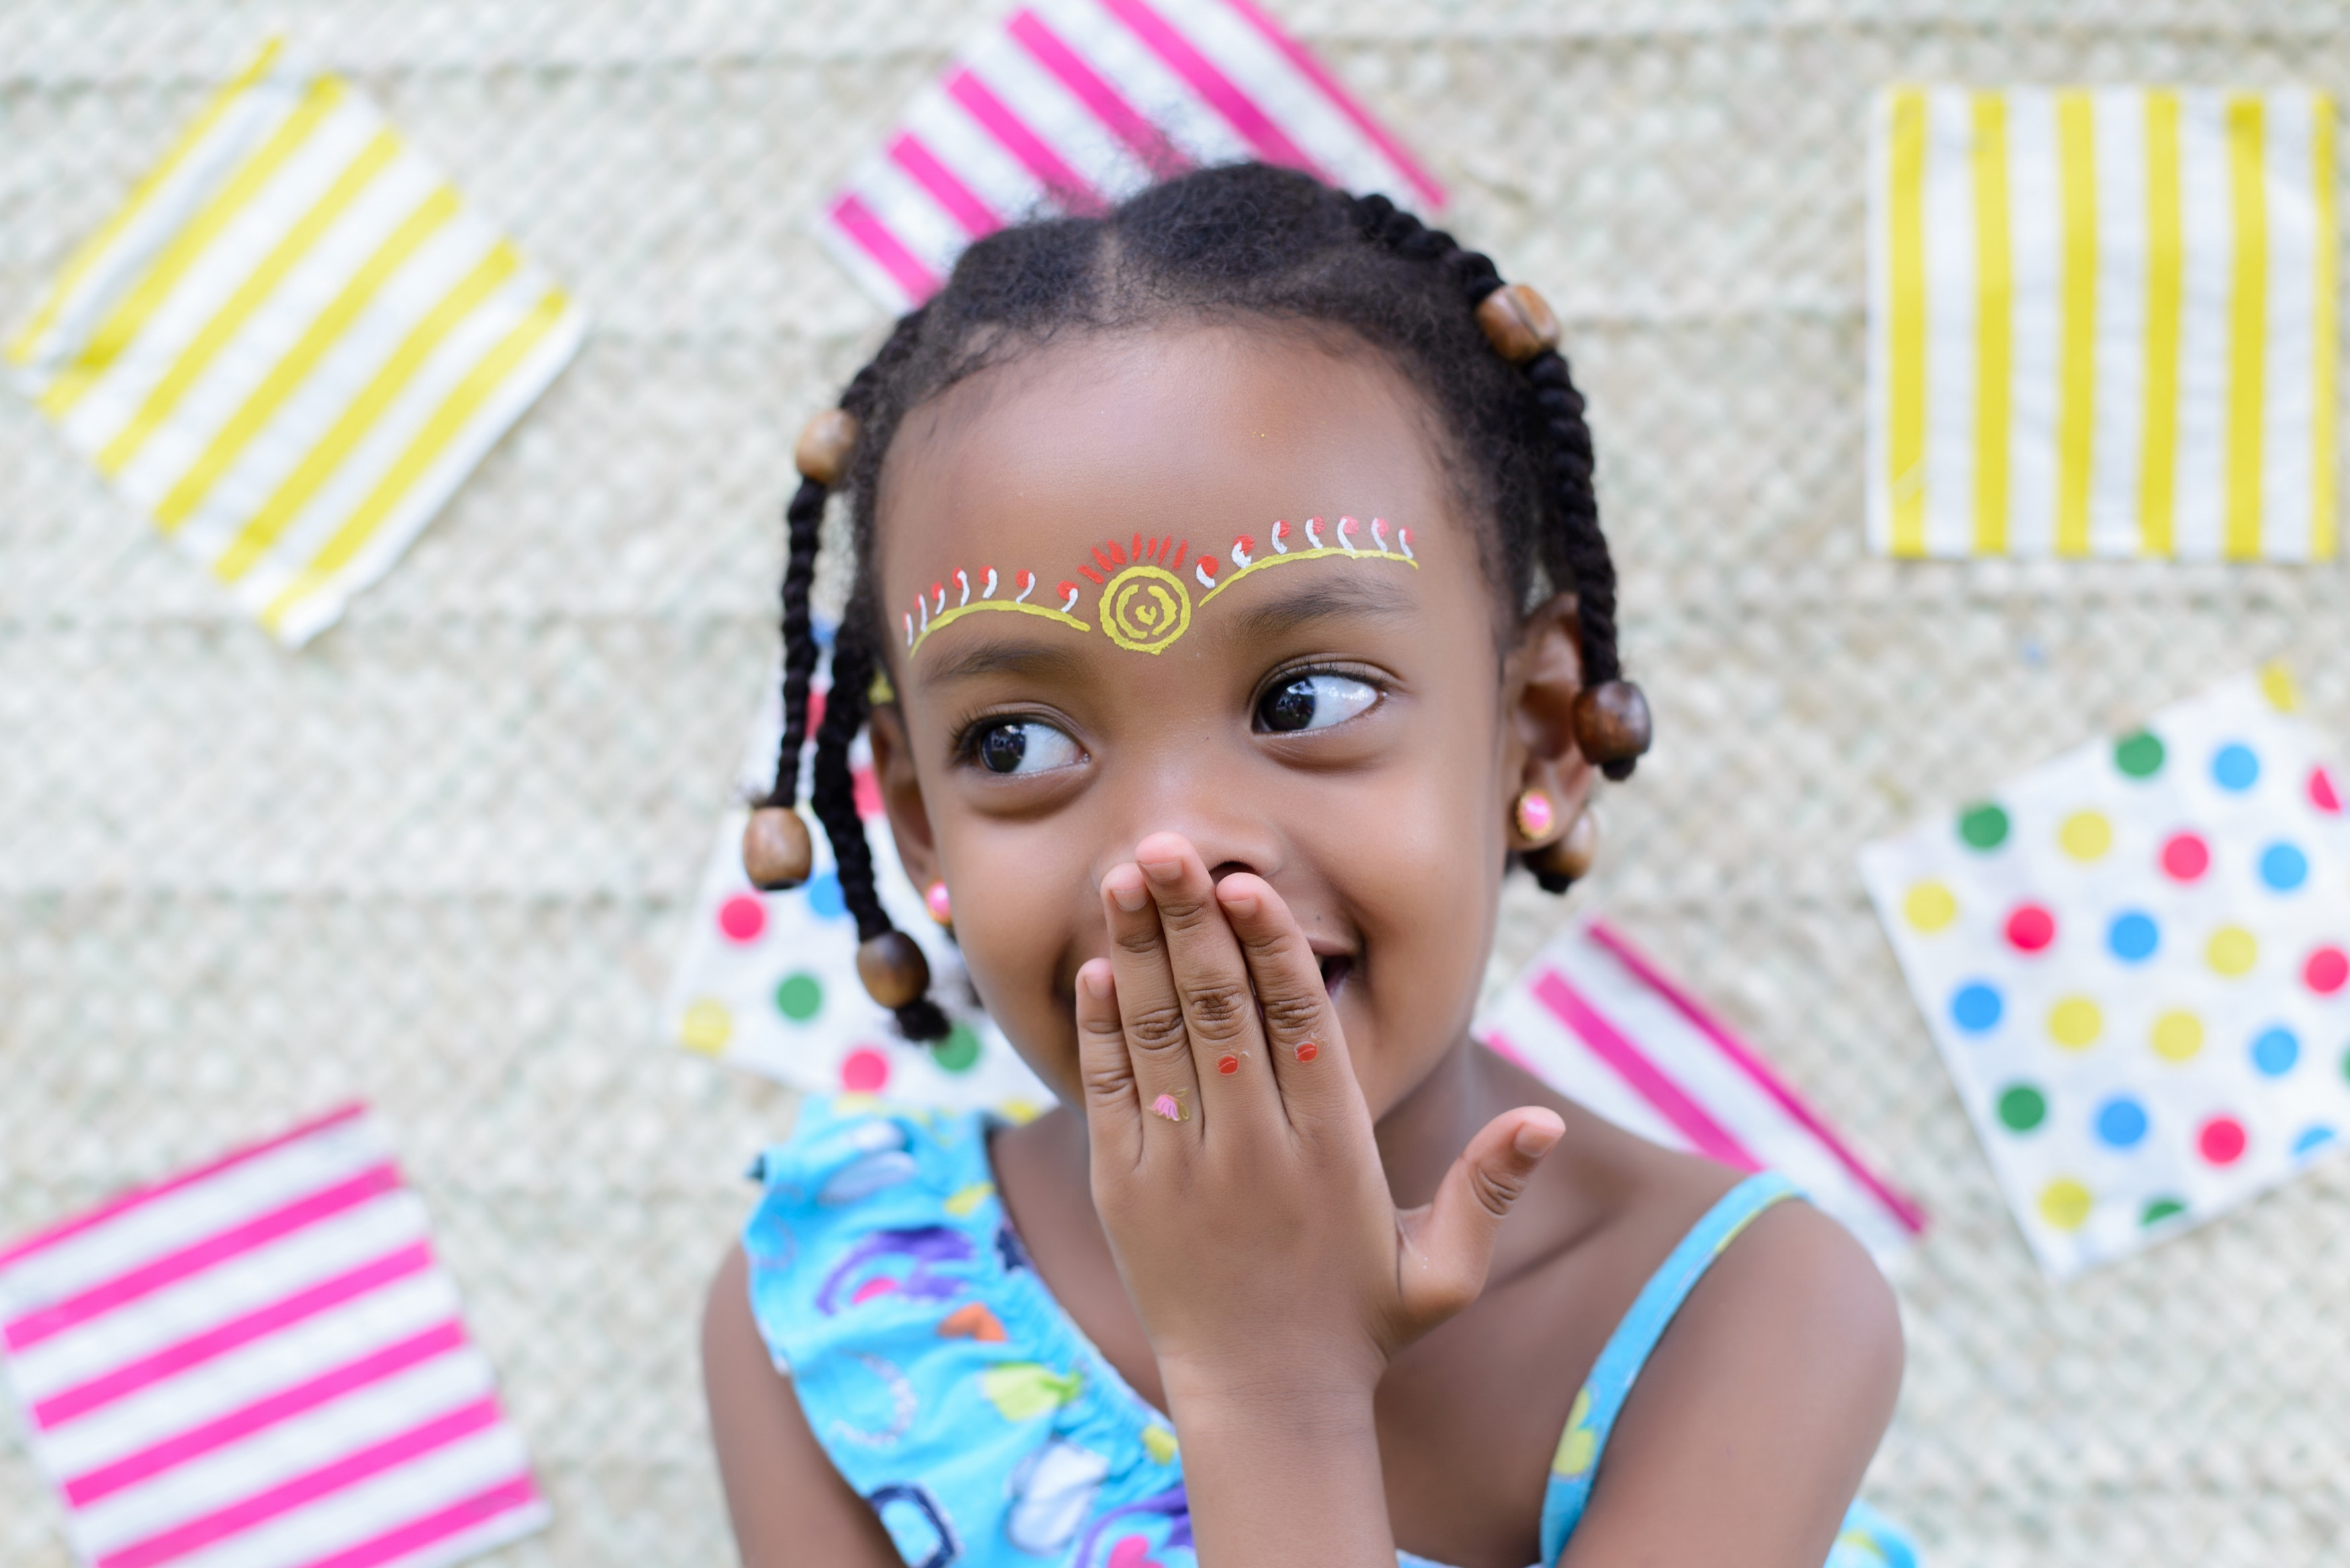 Party Planning 101: How to Plan a Kid's Birthday Party #kidsparty #partyinspo #sendomatic #party #partytheme